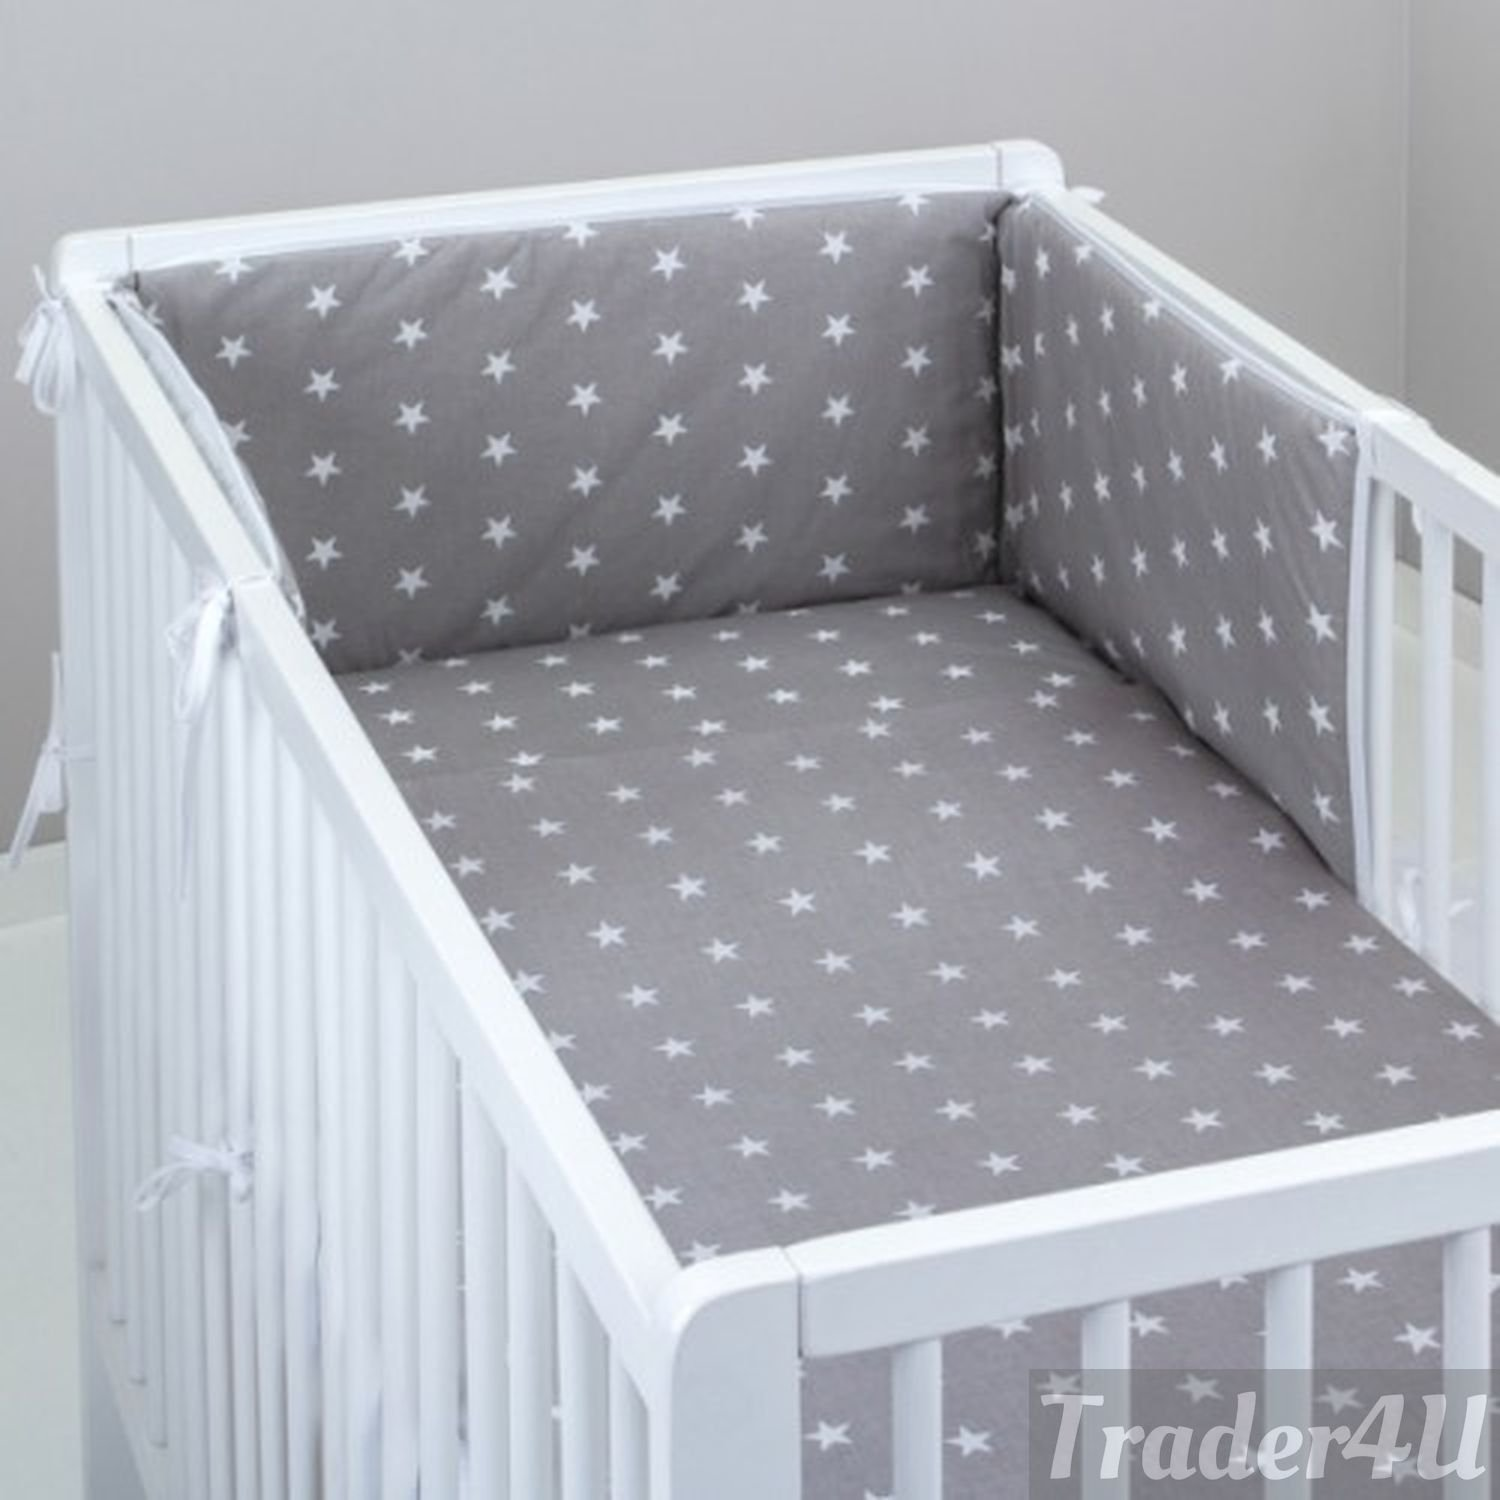 MillaLu 3 Pcs Baby Nursery Bedding Set fit to Cot 120x60cm or Cot Bed 140x70cm Padded Bumper (Fit to Cot Bed 140x70 cm, White Elephants on Blue) Trader 4u Ltd